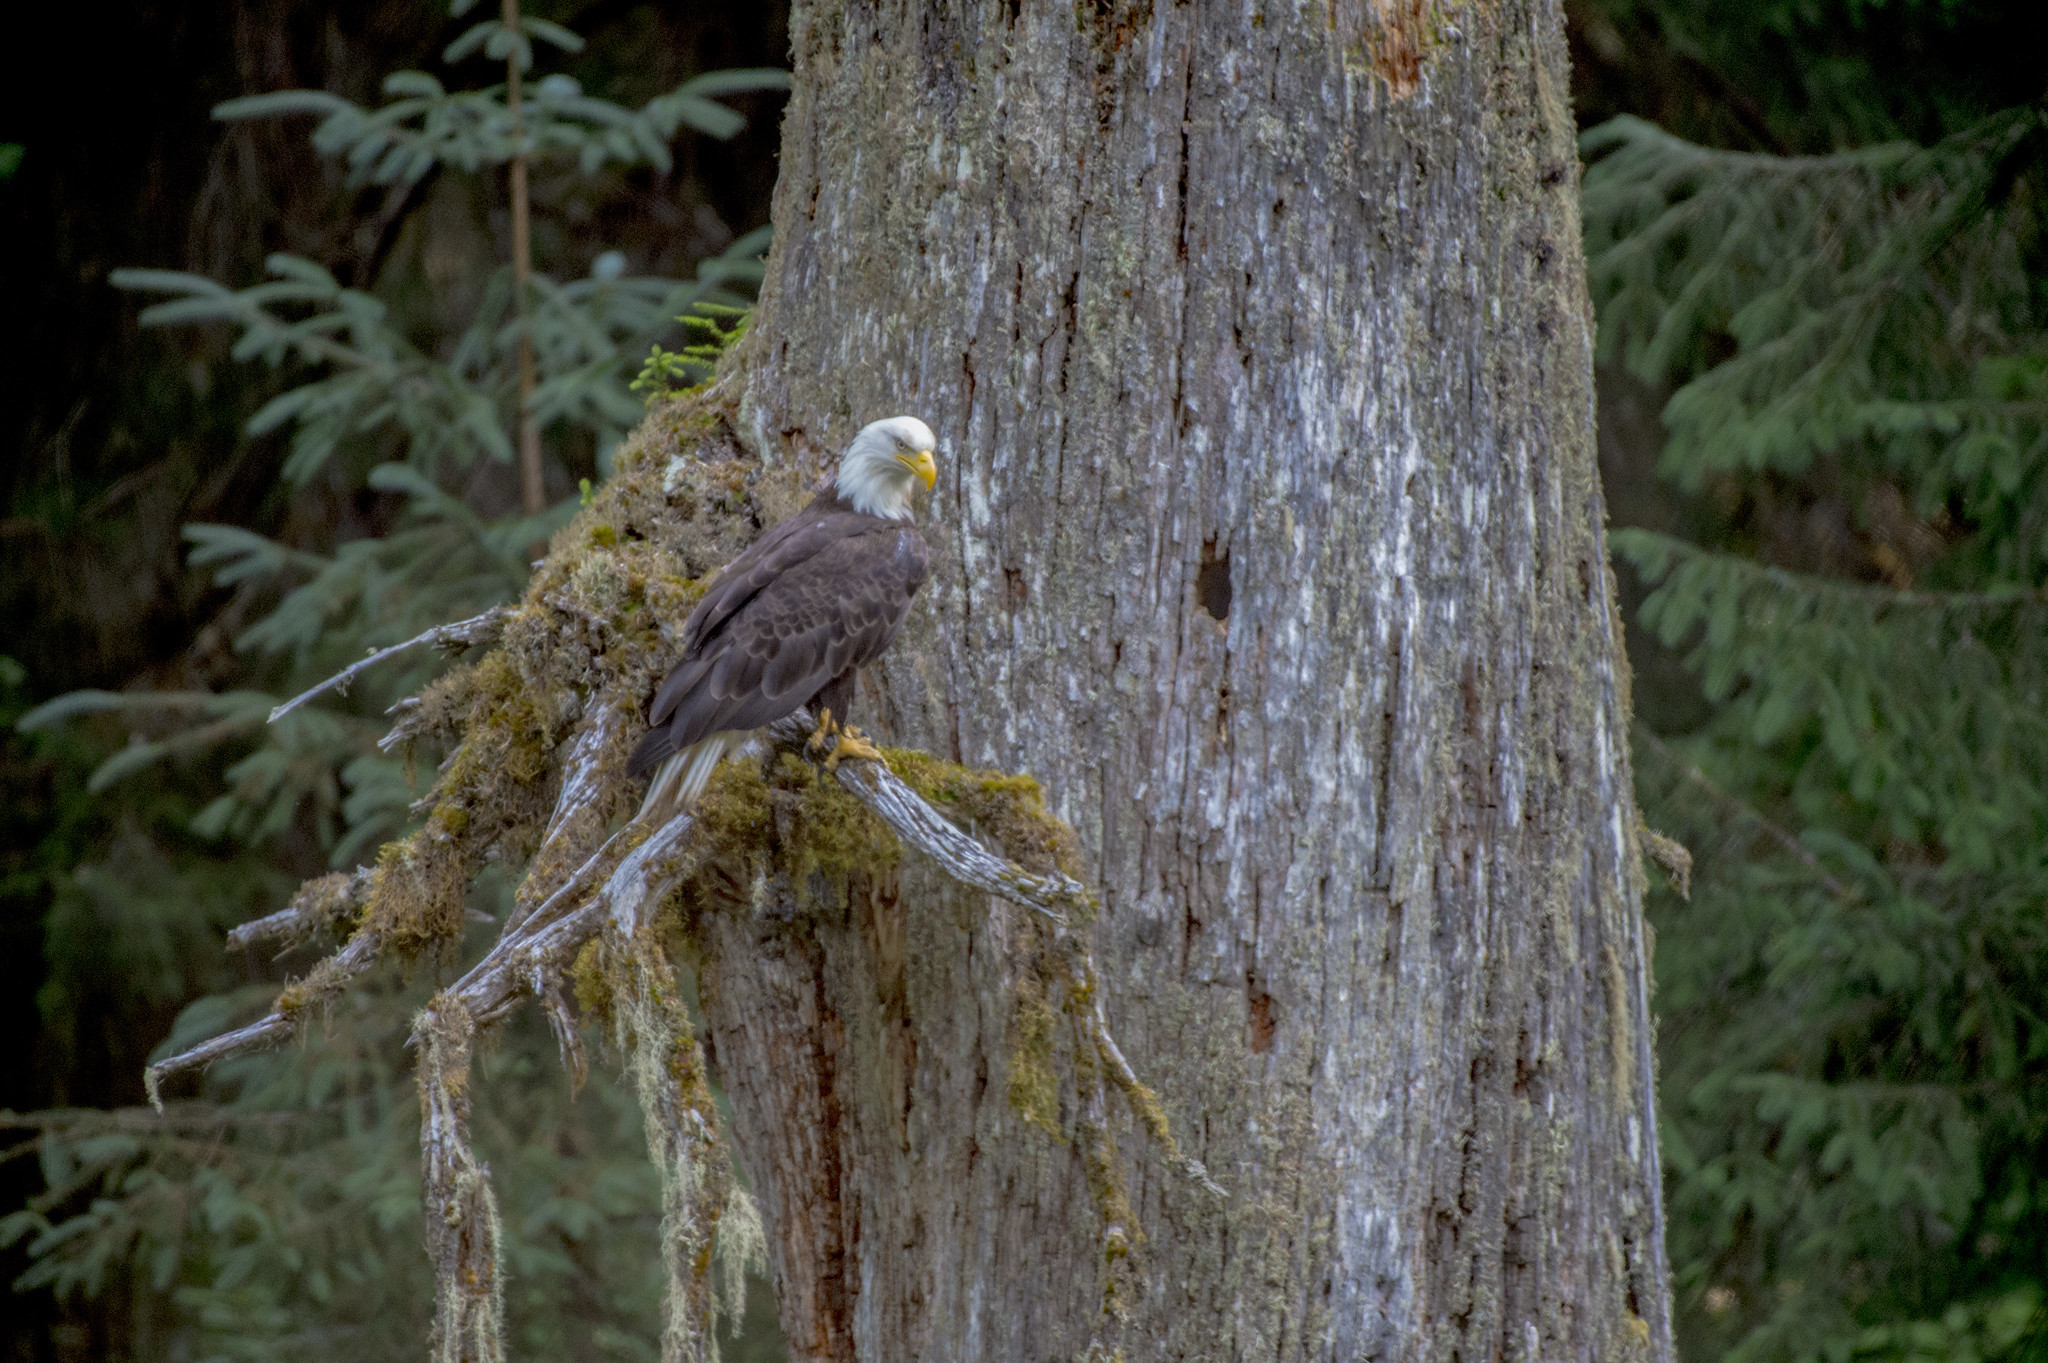 A bald eagle perched in a tree above Fish Creek in Hyder, Alaska